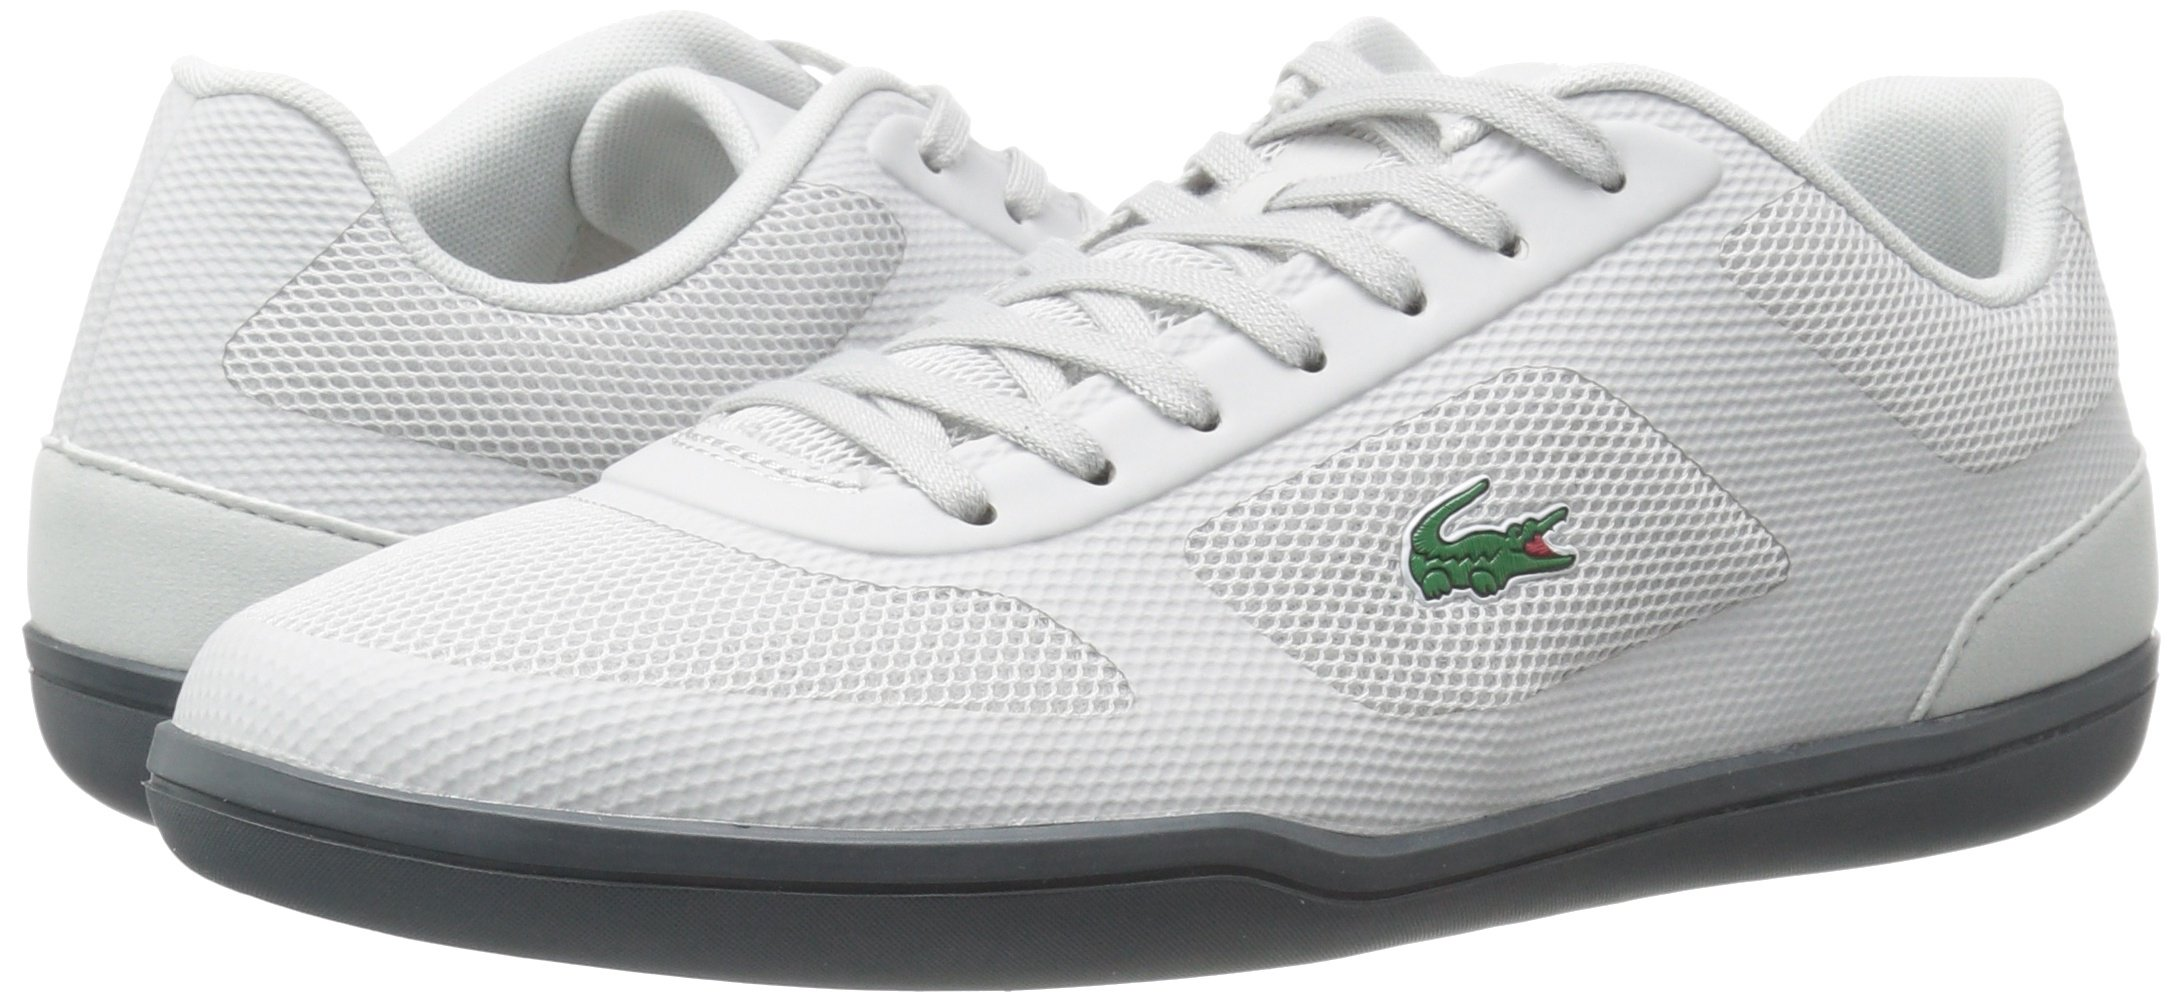 Lacoste Men S Court Minimal Sport   Spm Fashion Sneaker